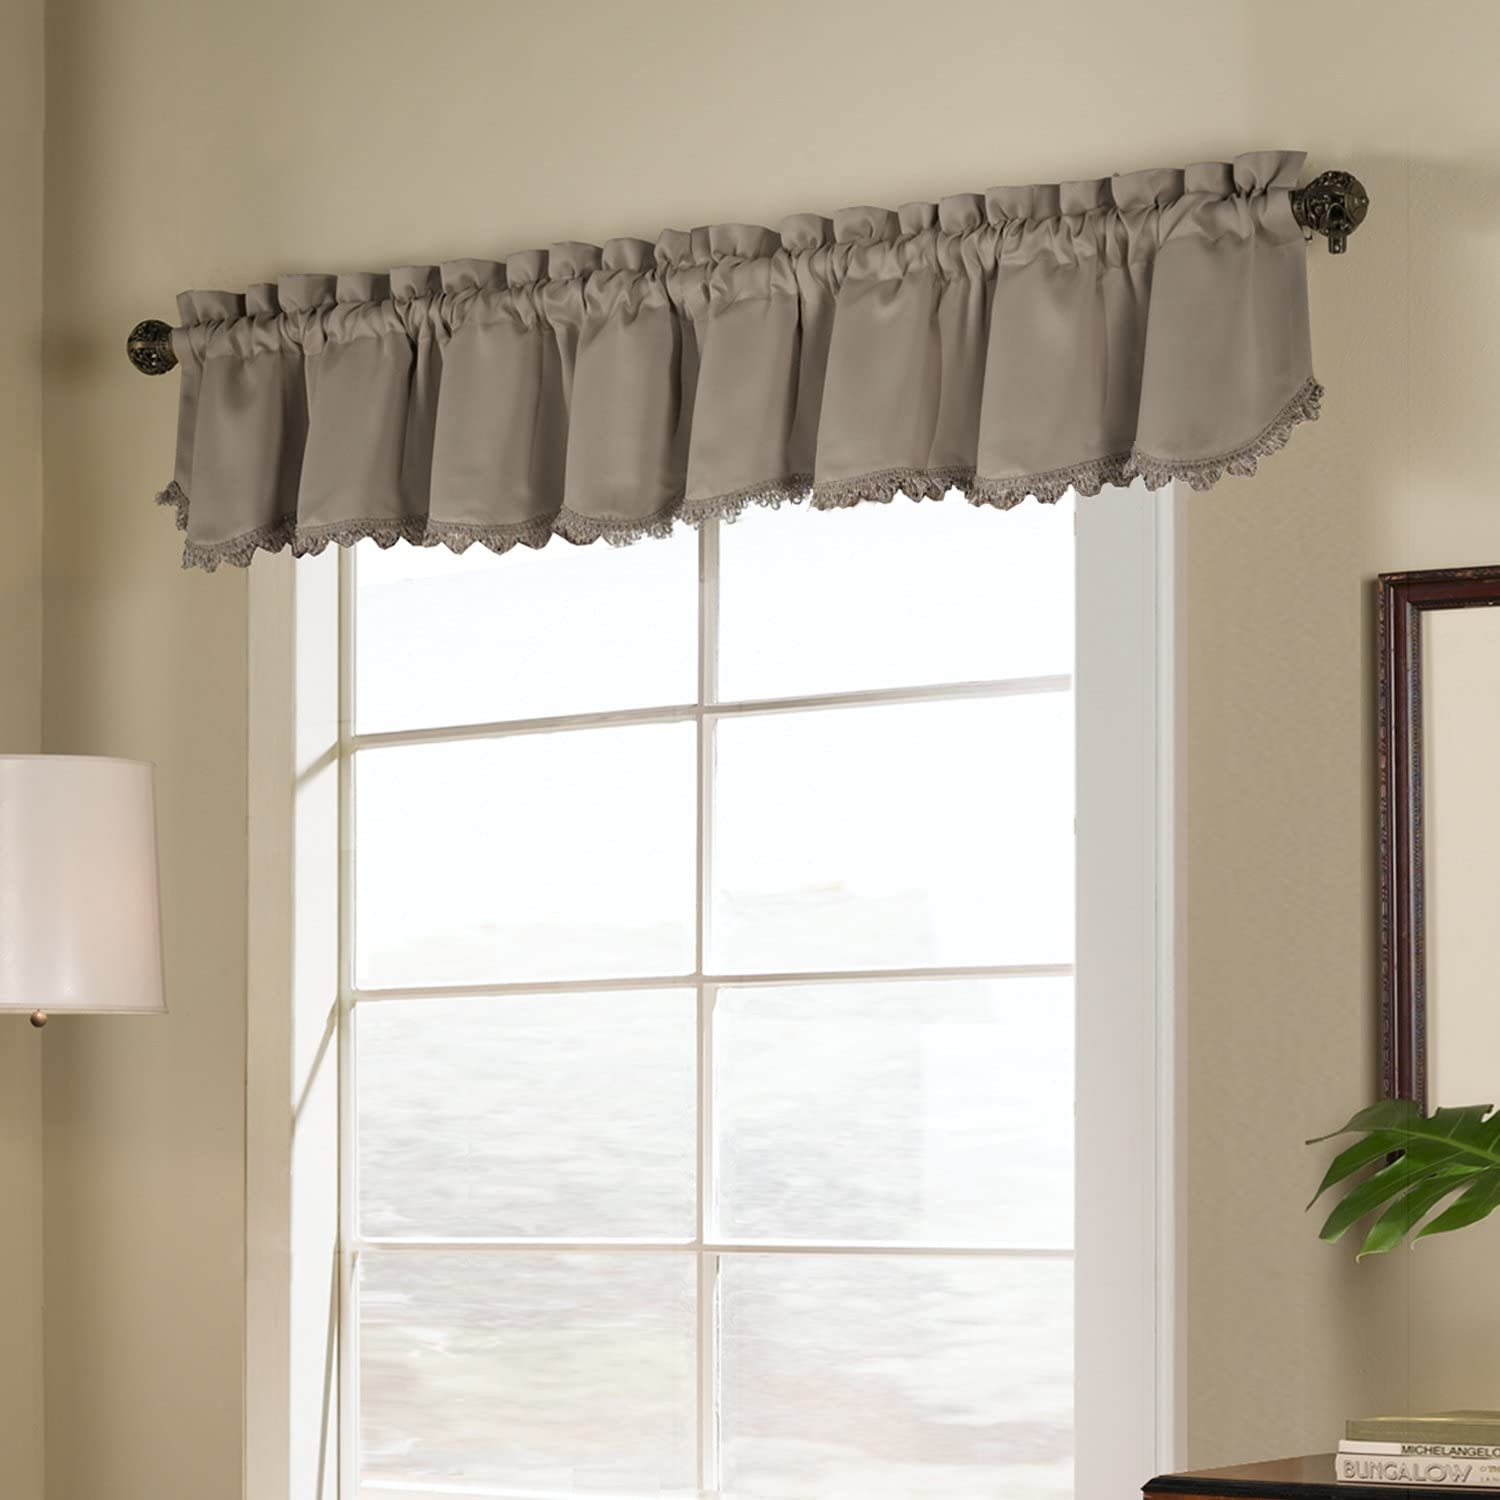 American Curtain and Home Solid Blackout Window Treatment Valance, 54-Inch by 15-Inch, Taupe